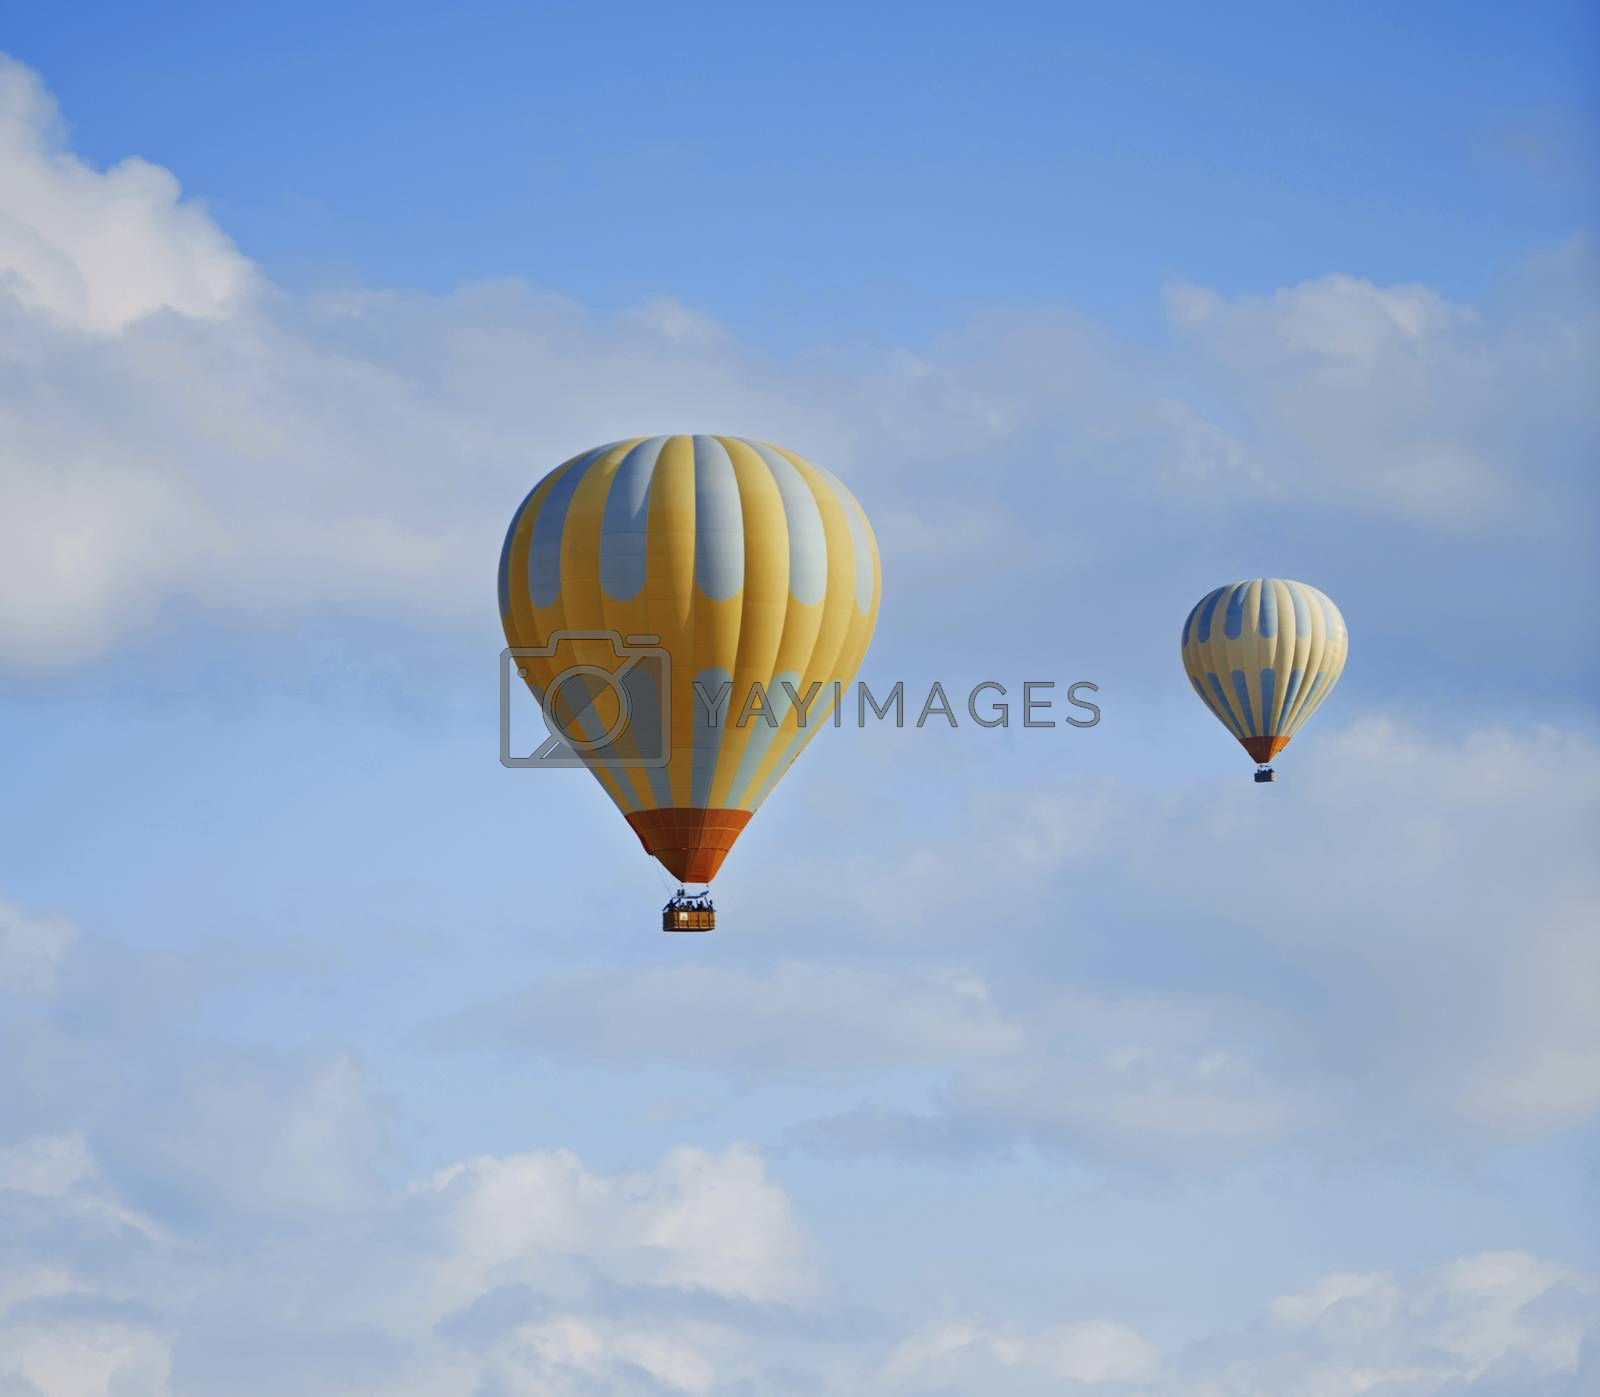 Two hot air balloons flying in the sky